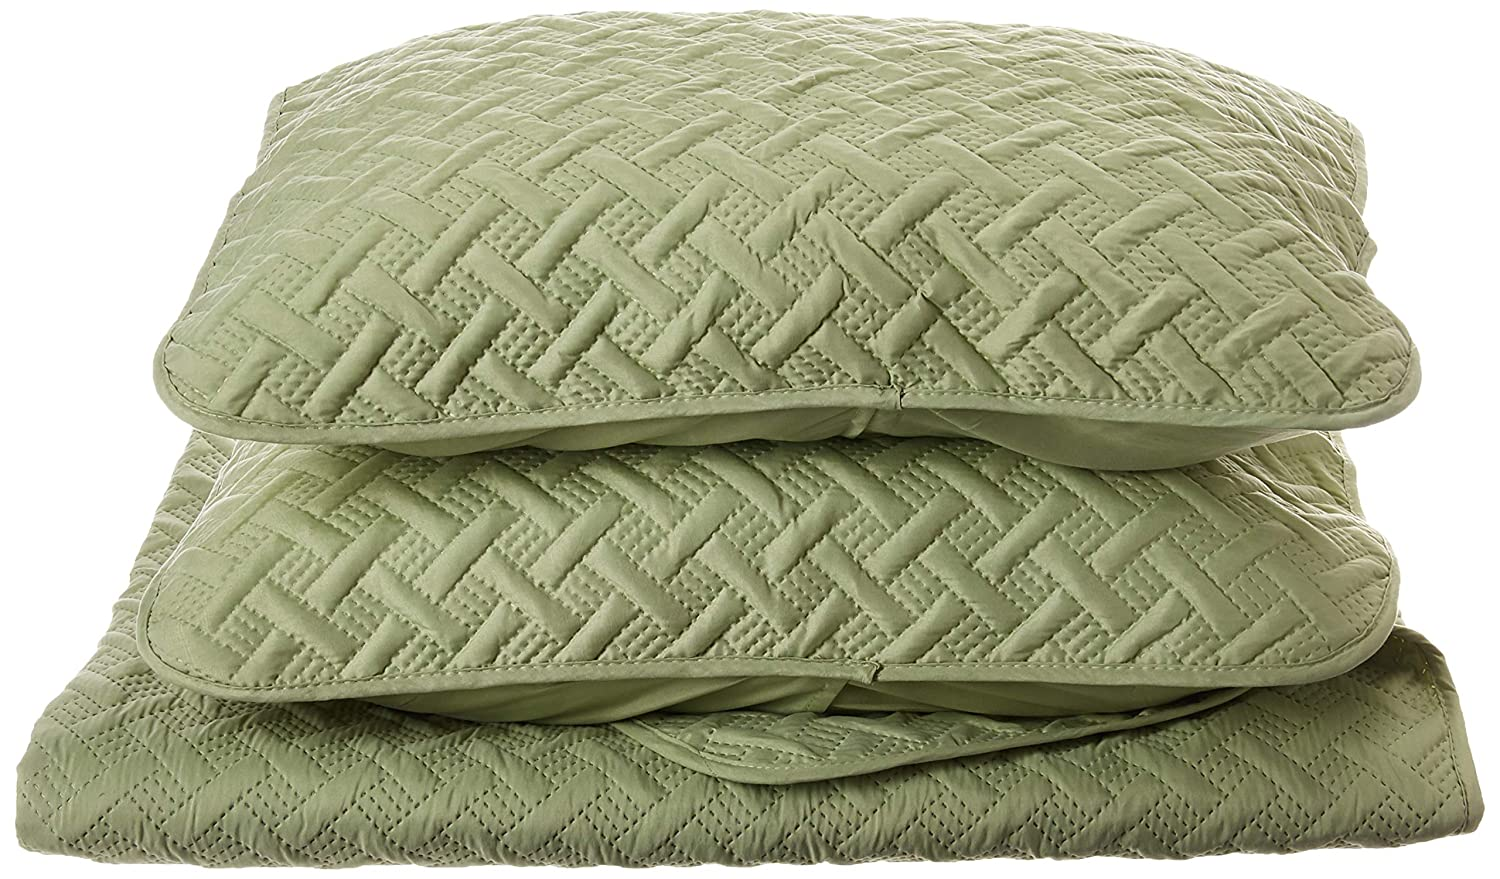 VCNY Home Nina Textured Geometric 3-Piece Solid Quilt Set, Full/Queen, Green